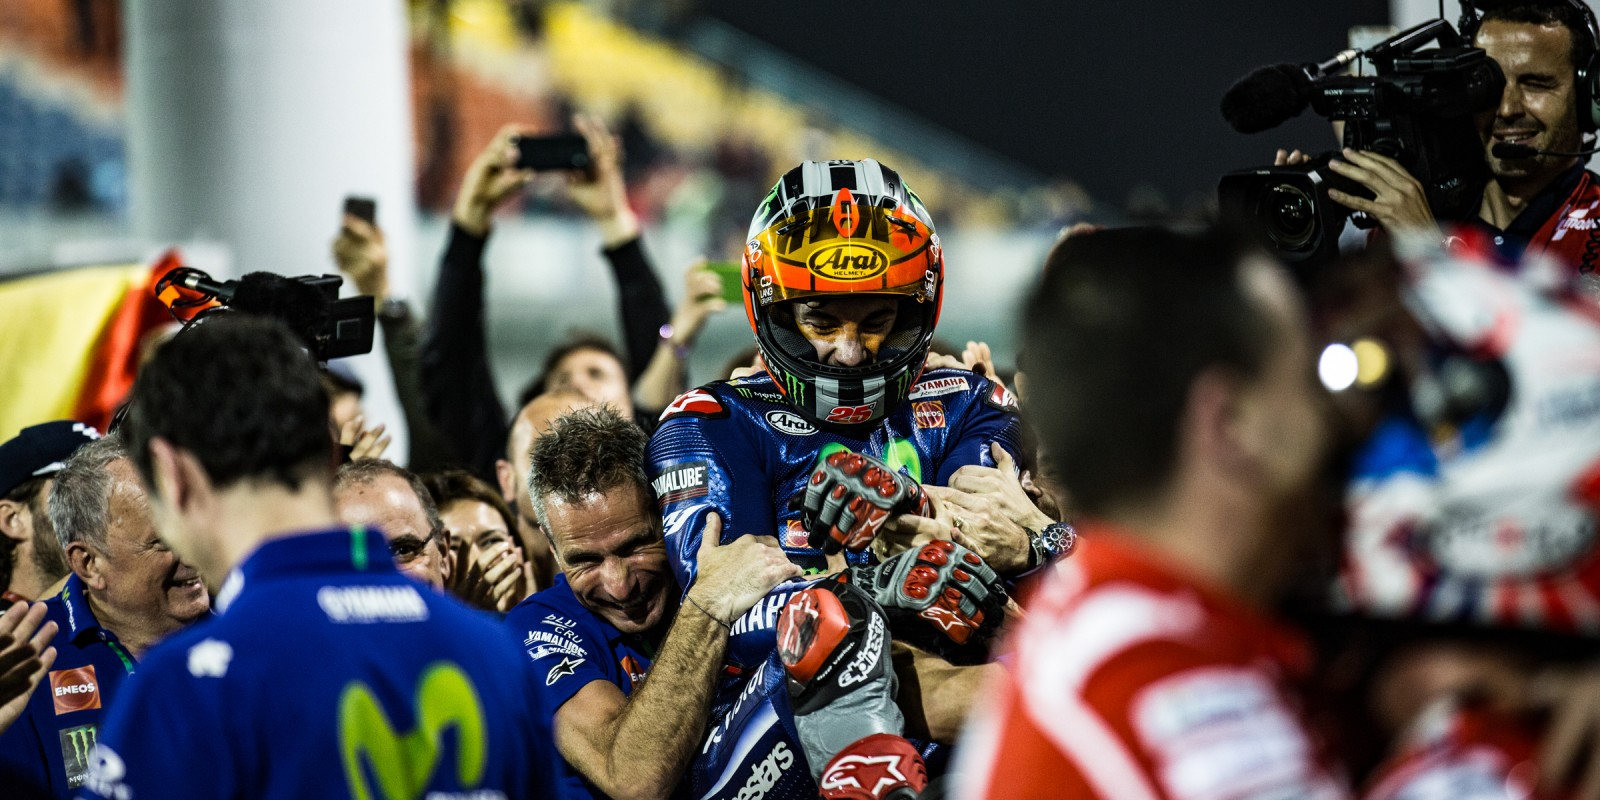 Maverick Viñales at the 2017 Grand Prix of Qatar